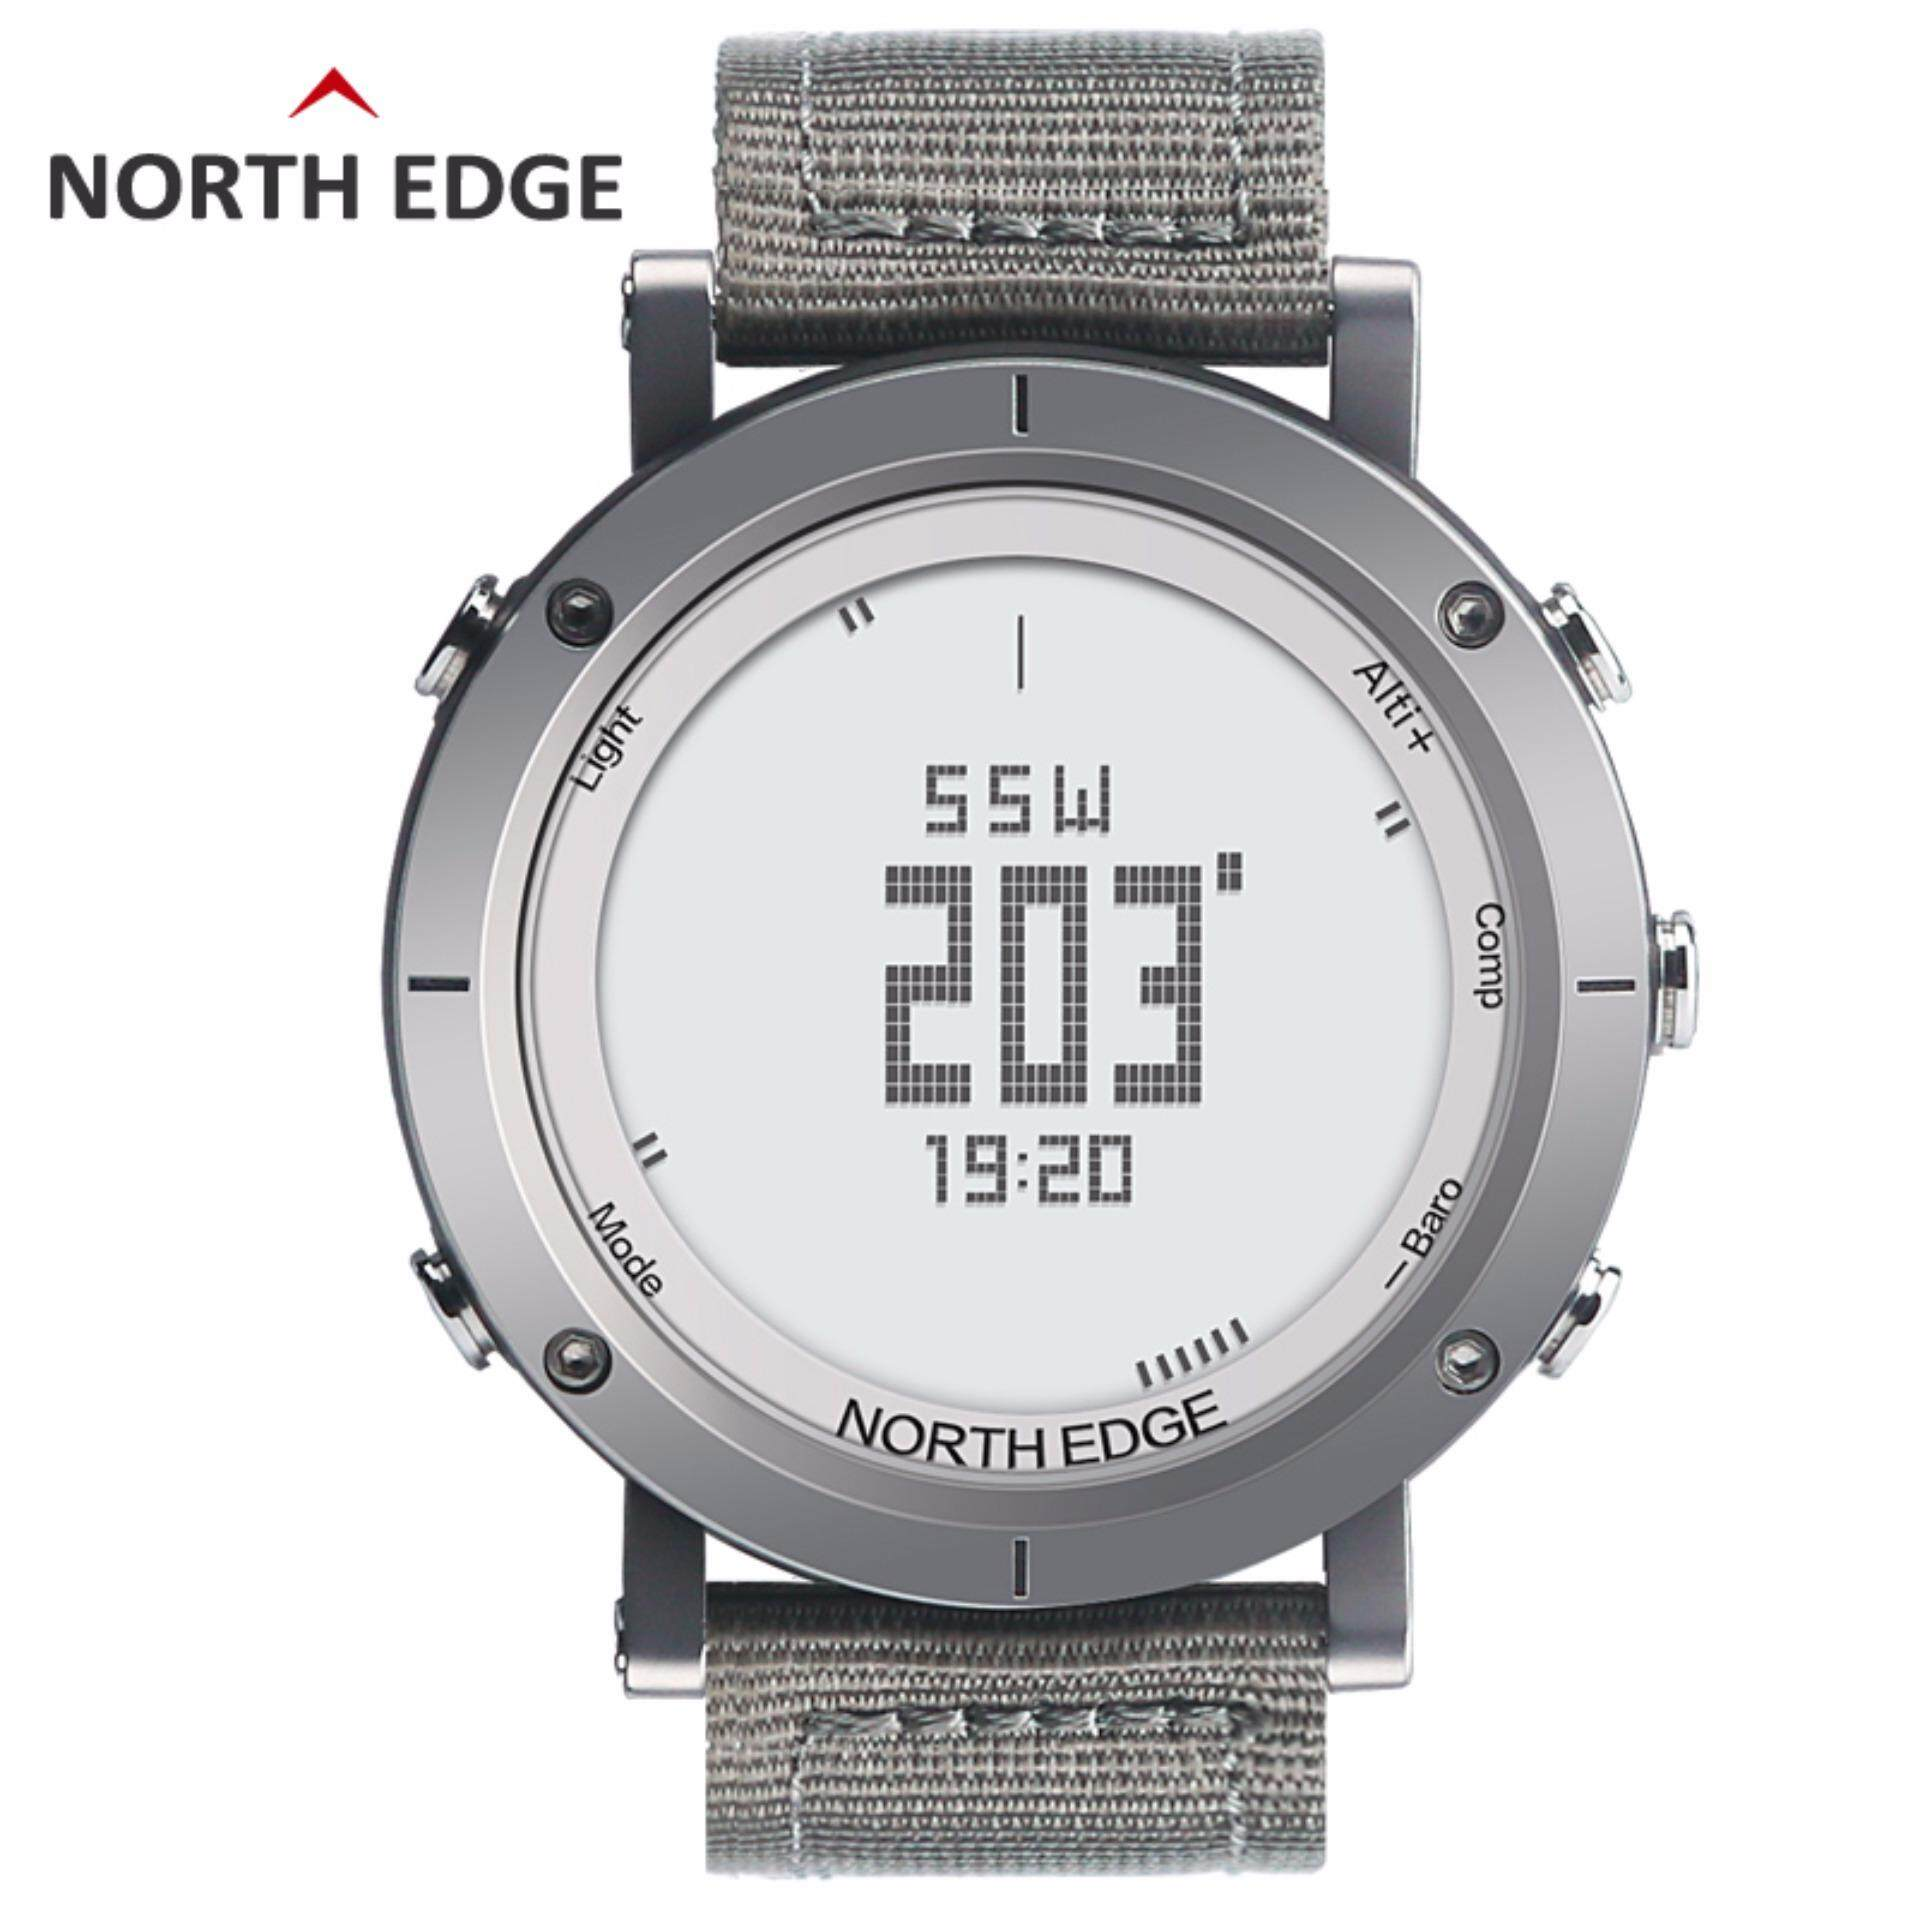 marathon multifunctional waterproof watch masculino sport ezon relogio product altitude compass military climbing table altimeter watches